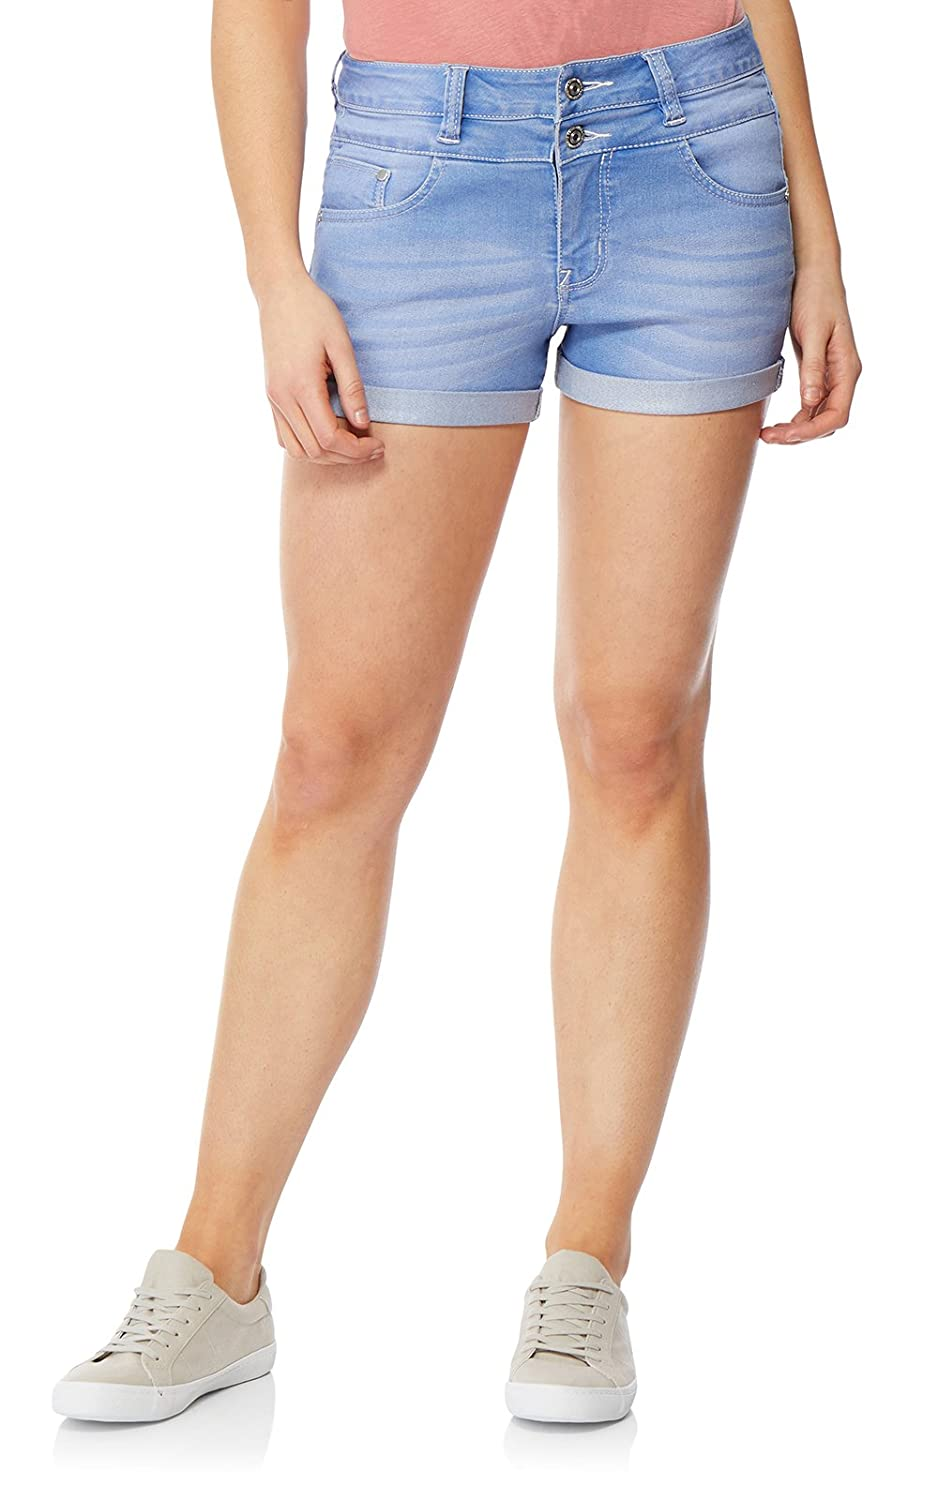 af6dbac35c Very soft, comfortable and made with stretch denim. You can wear it  anytime! 3